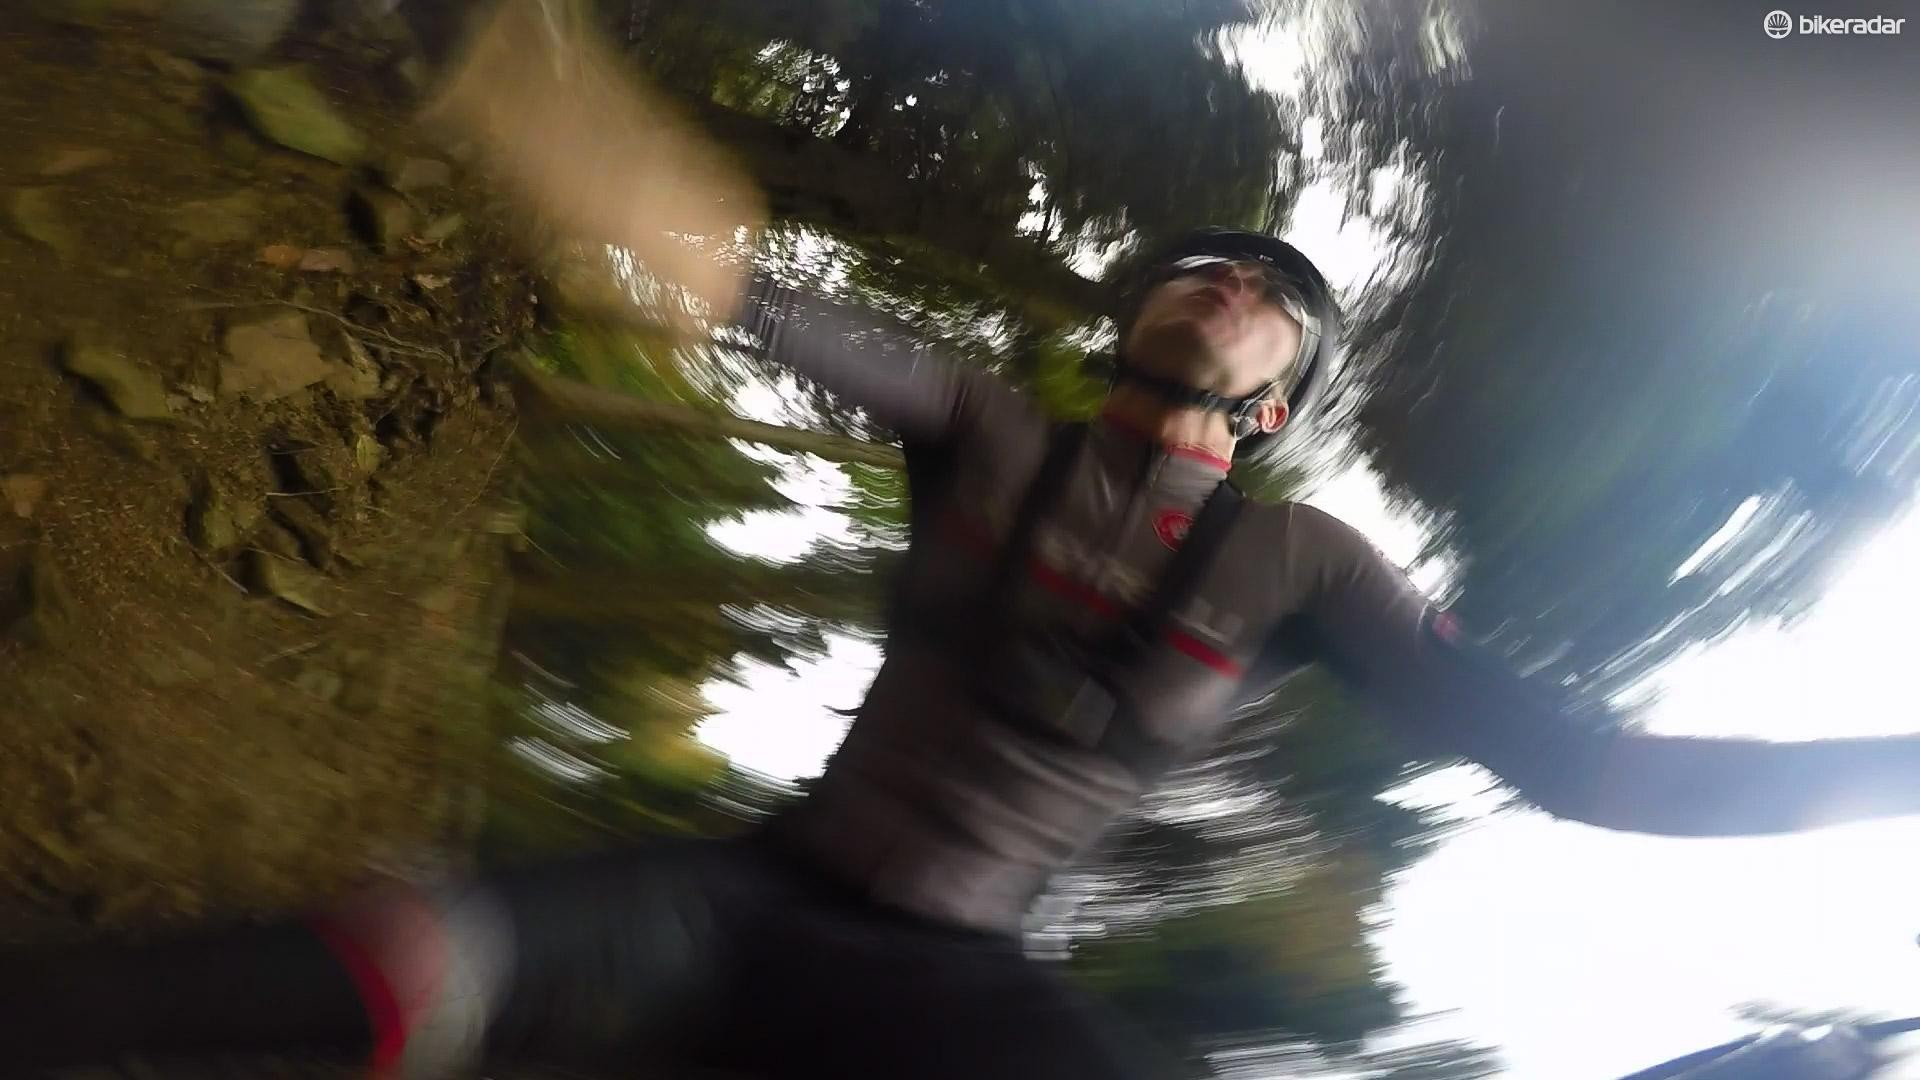 One downside of skinsuits — it hurts more when you crash